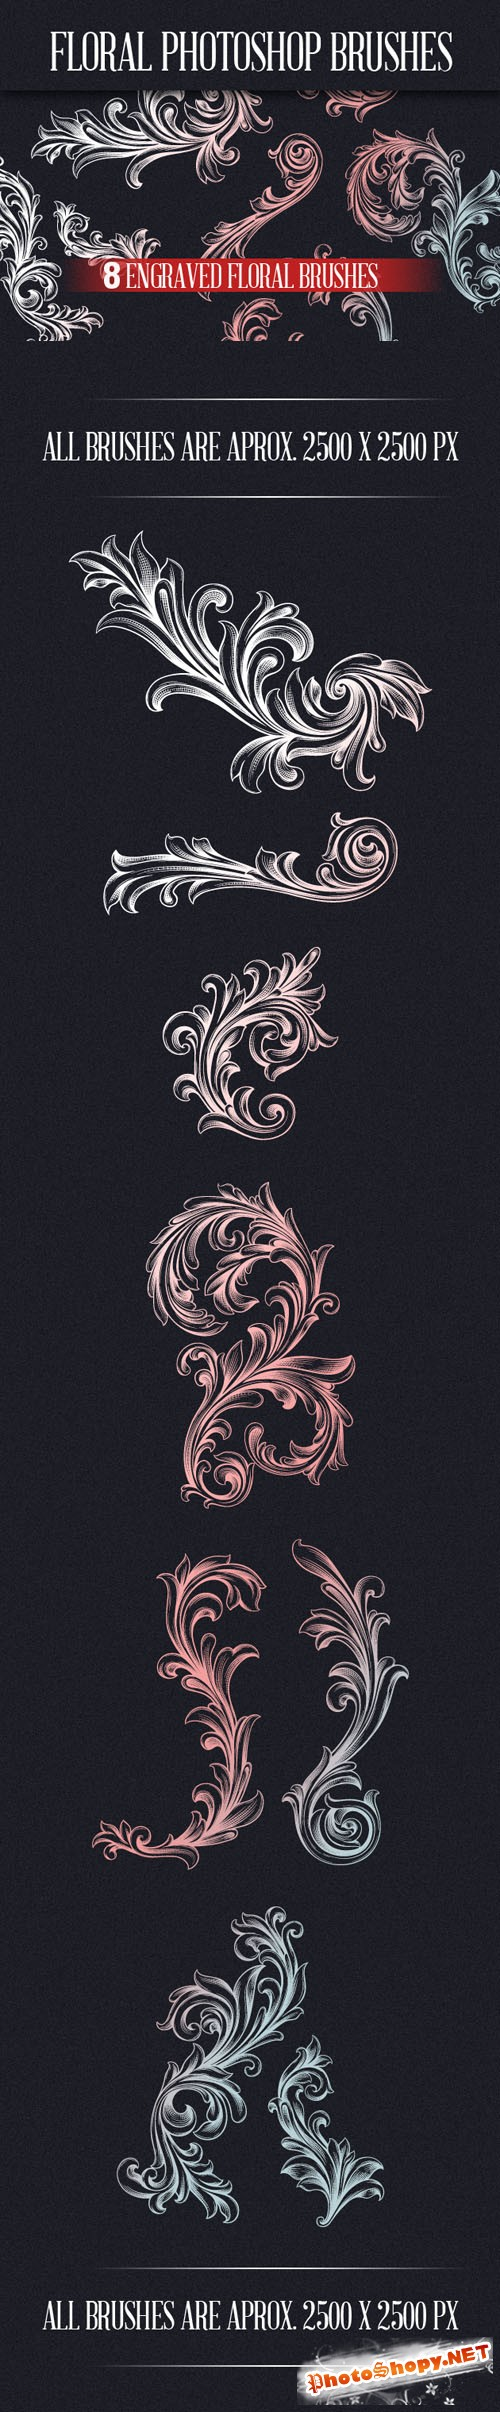 Designtnt - Engraved Floral Photoshop Brushes